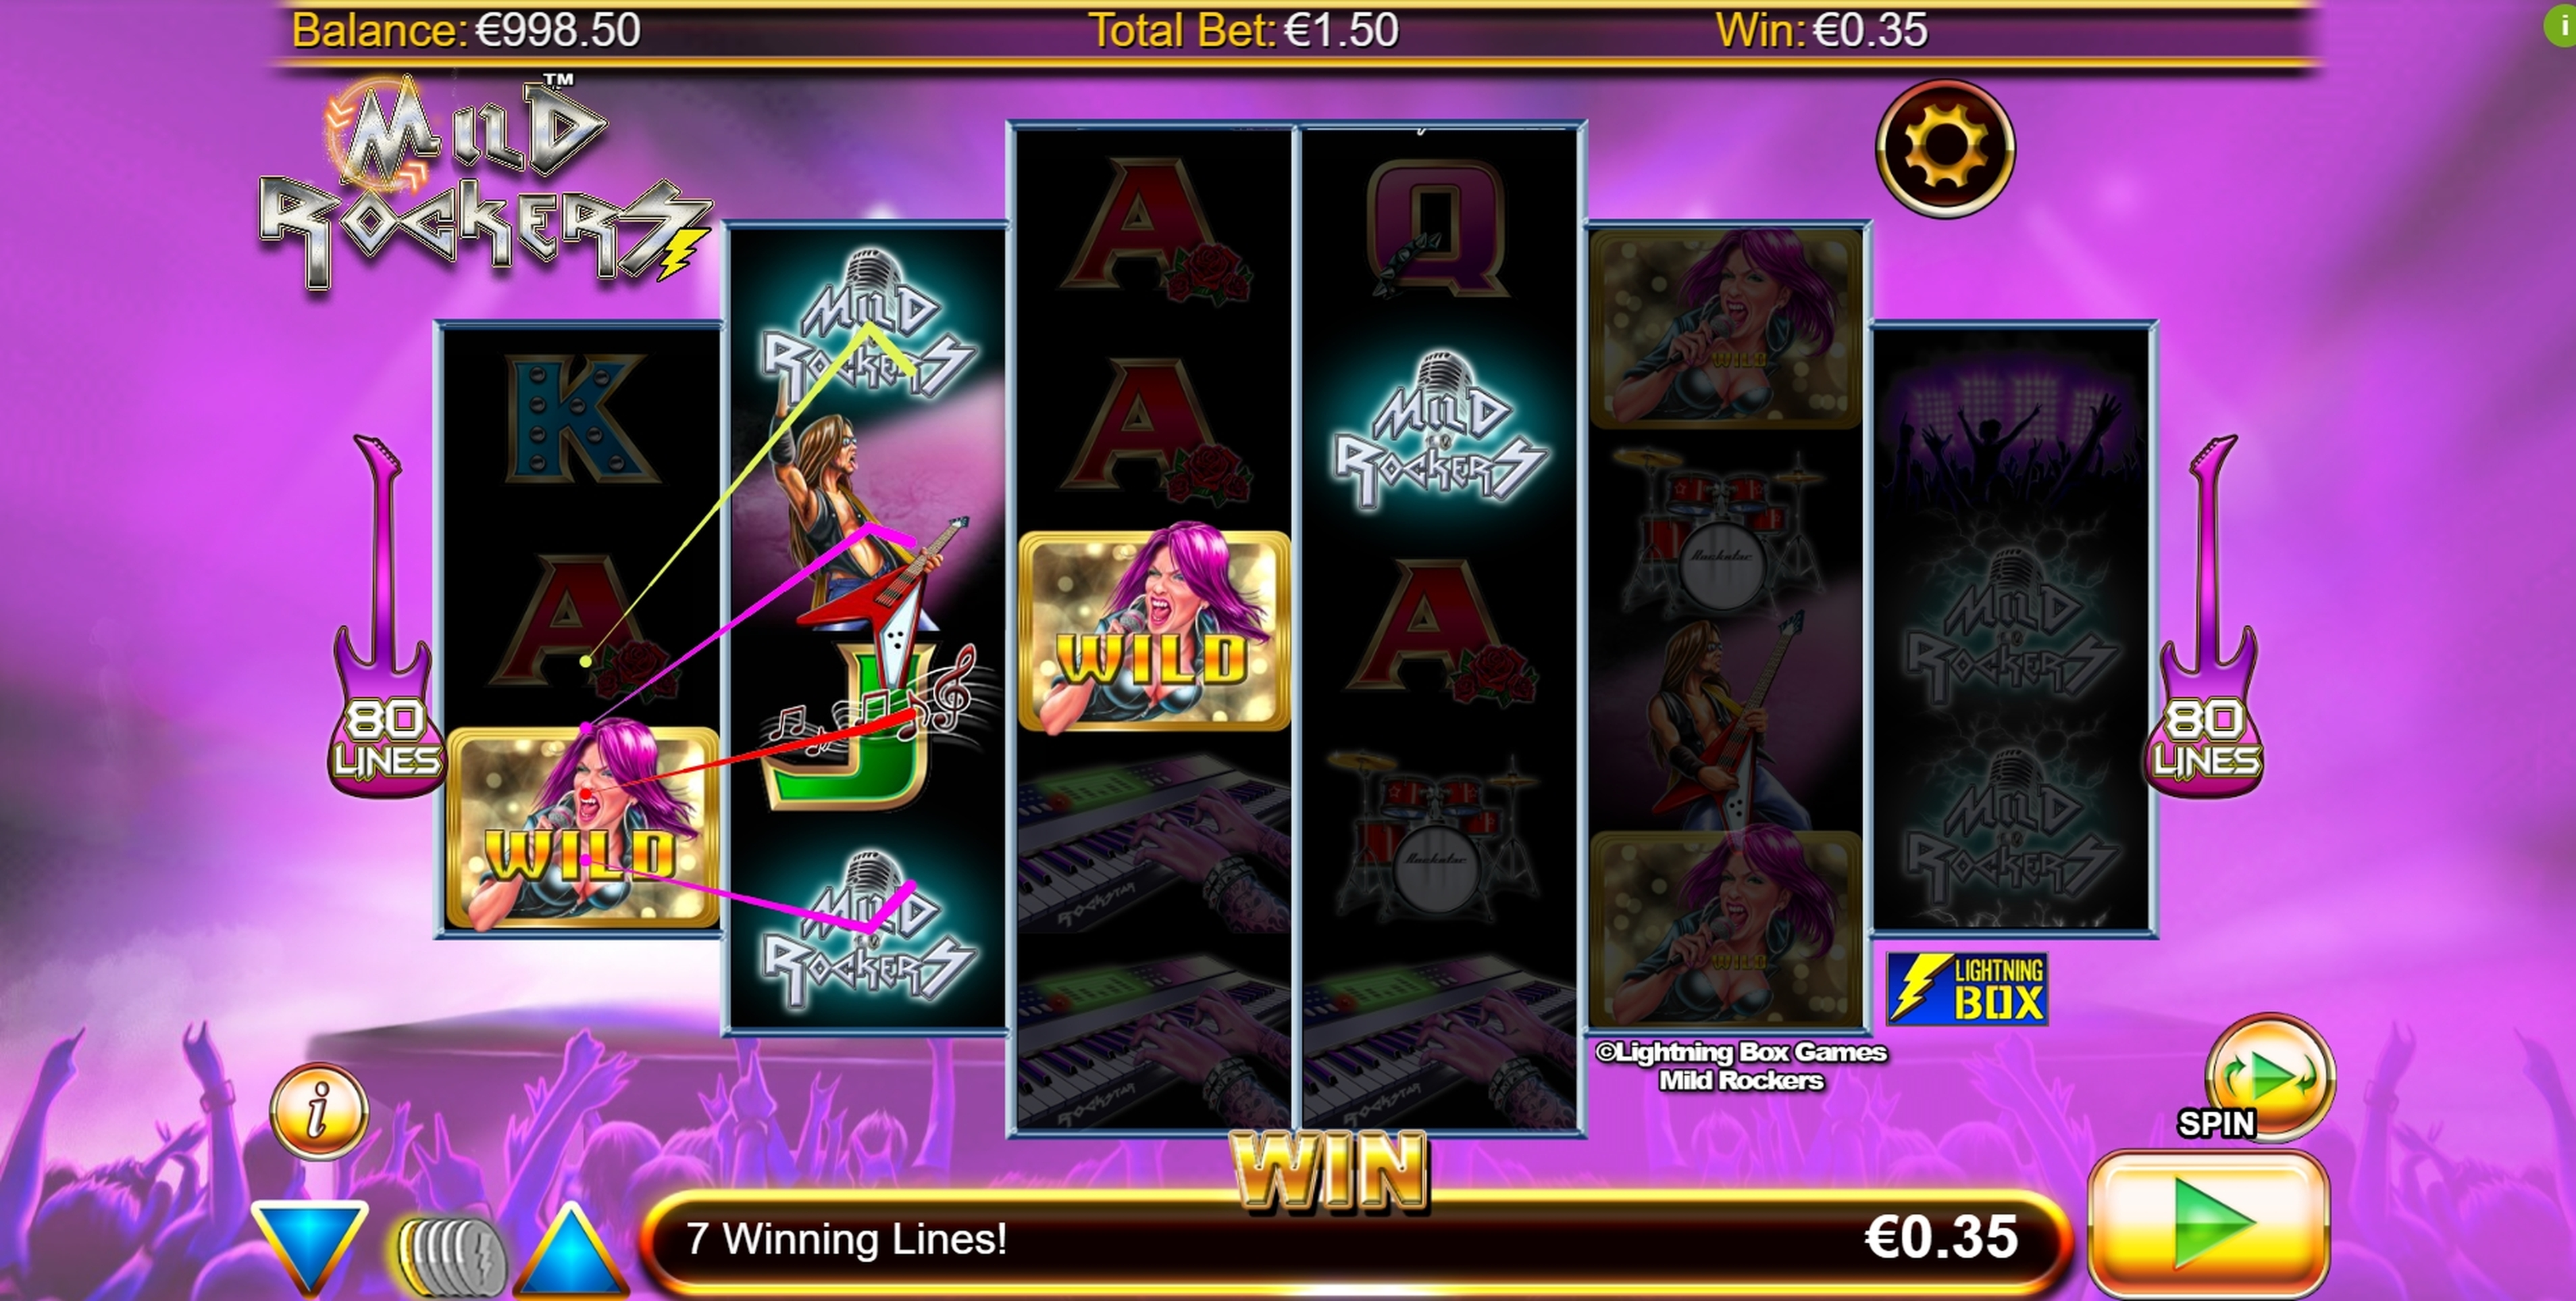 Win Money in Mild Rockers Free Slot Game by Lightning Box